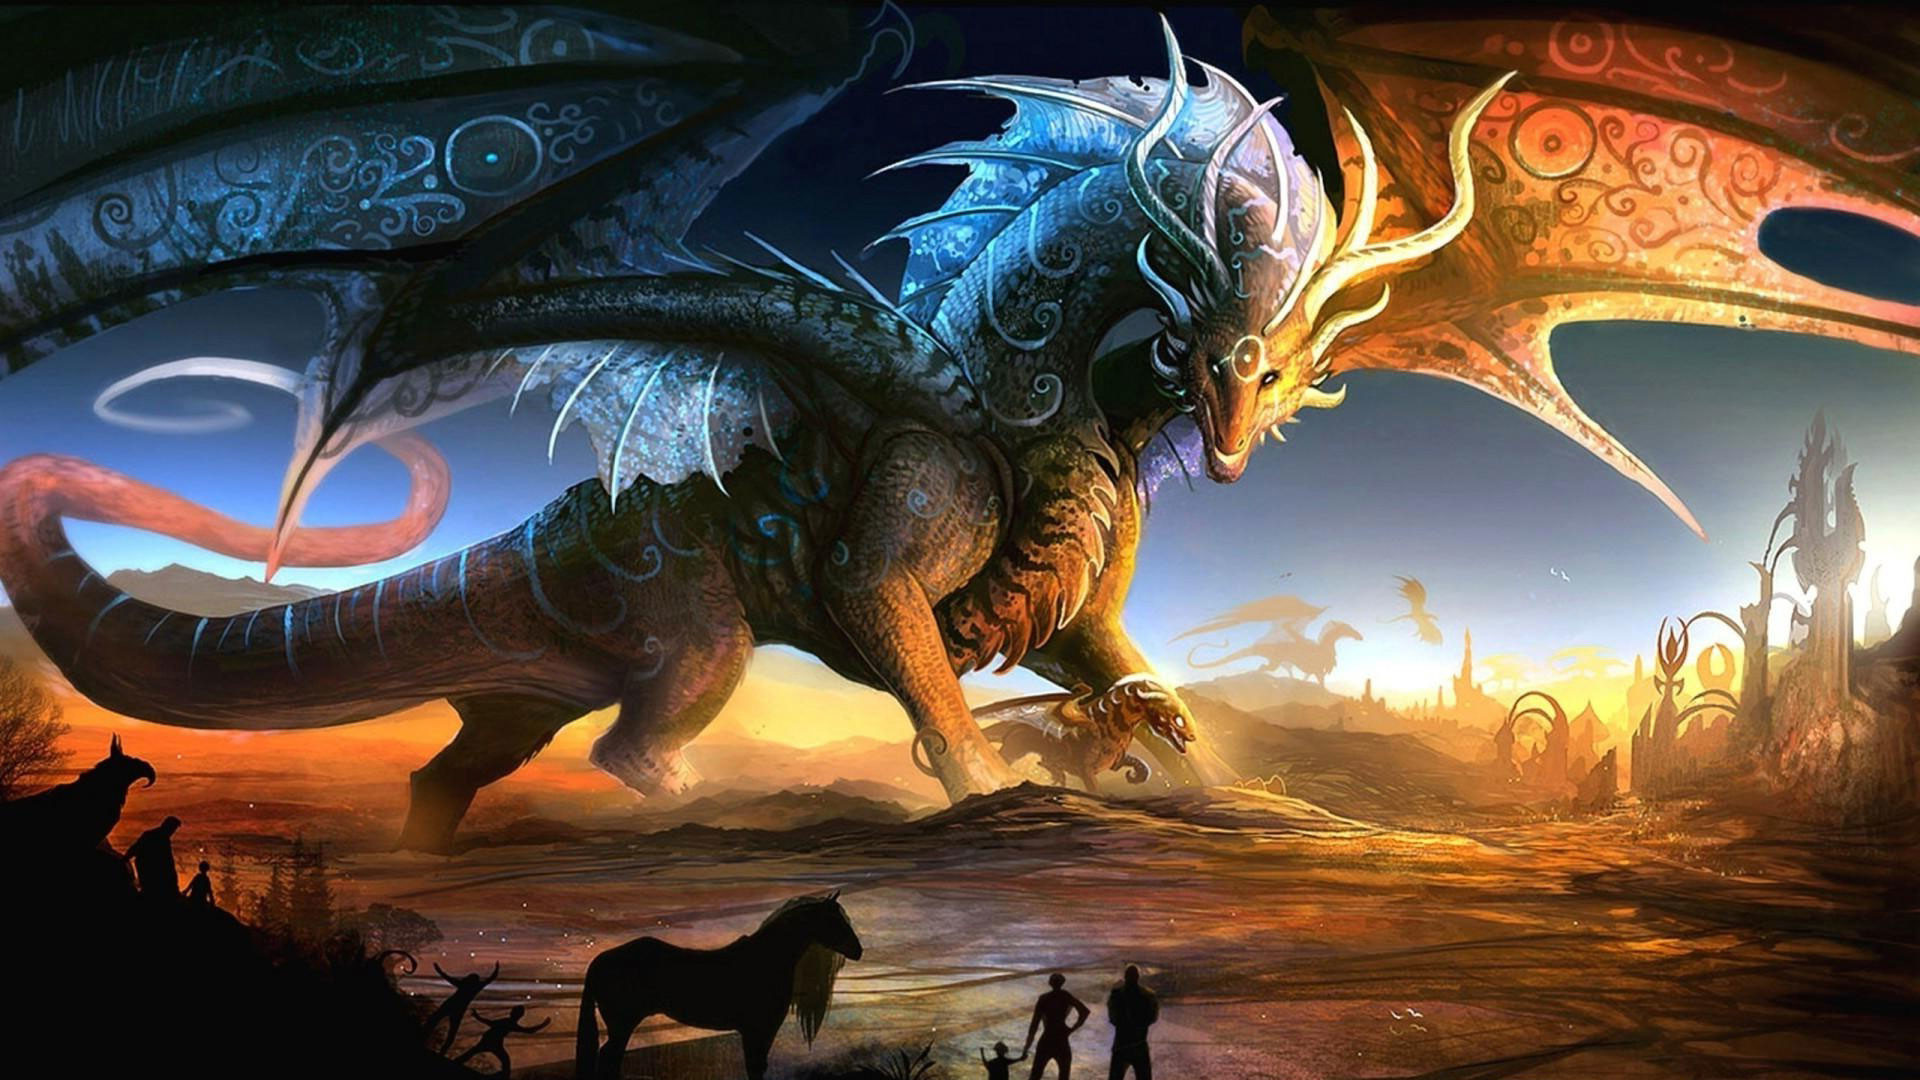 Cool 3d dragon wallpapers 55 images - Dragon backgrounds 1920x1080 ...